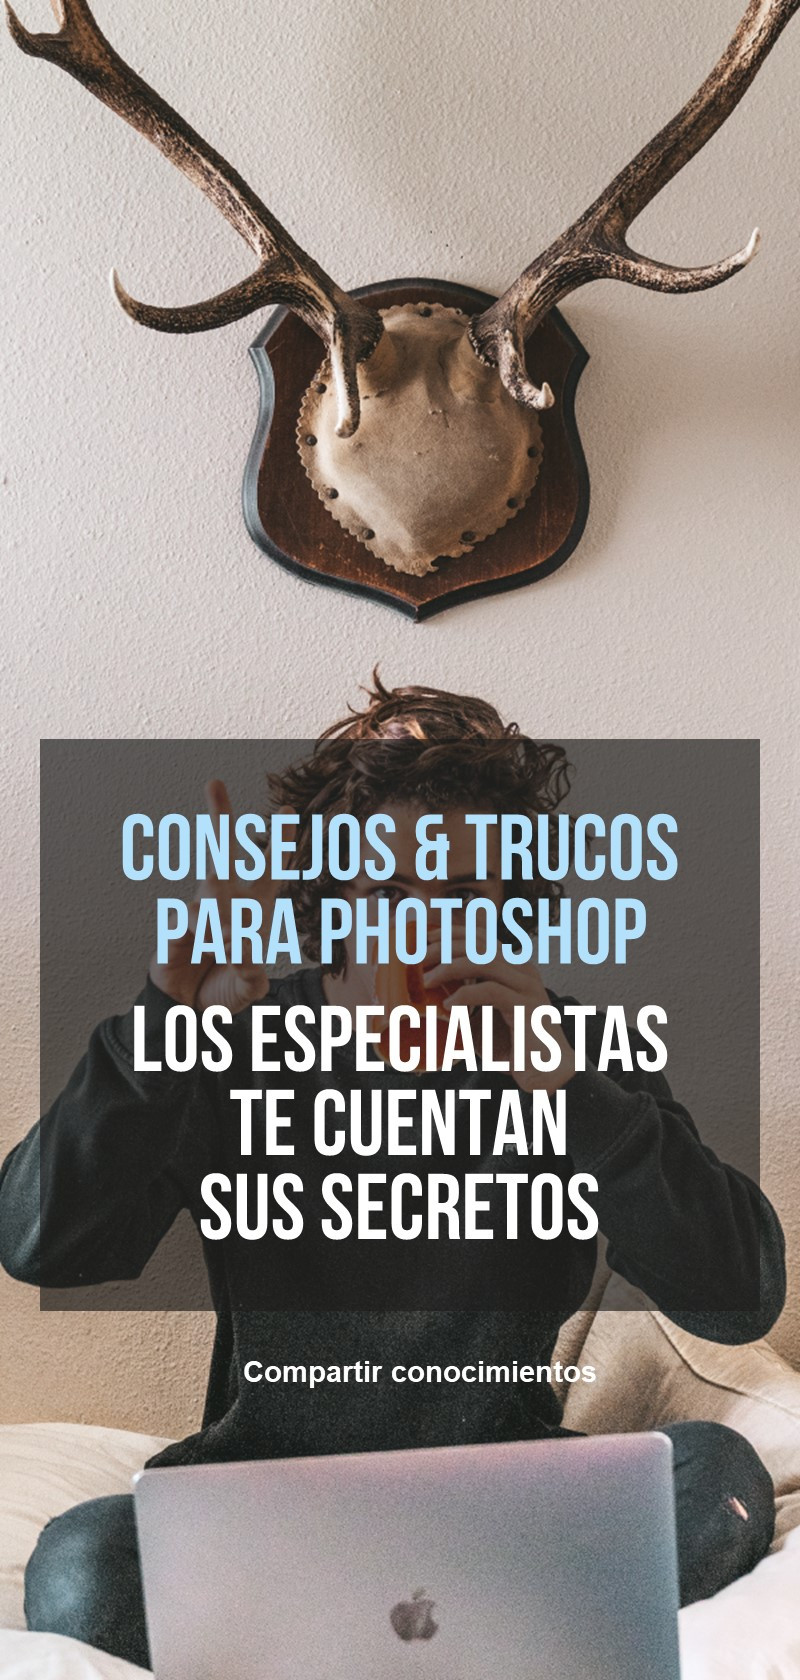 Especialistas en Photoshop